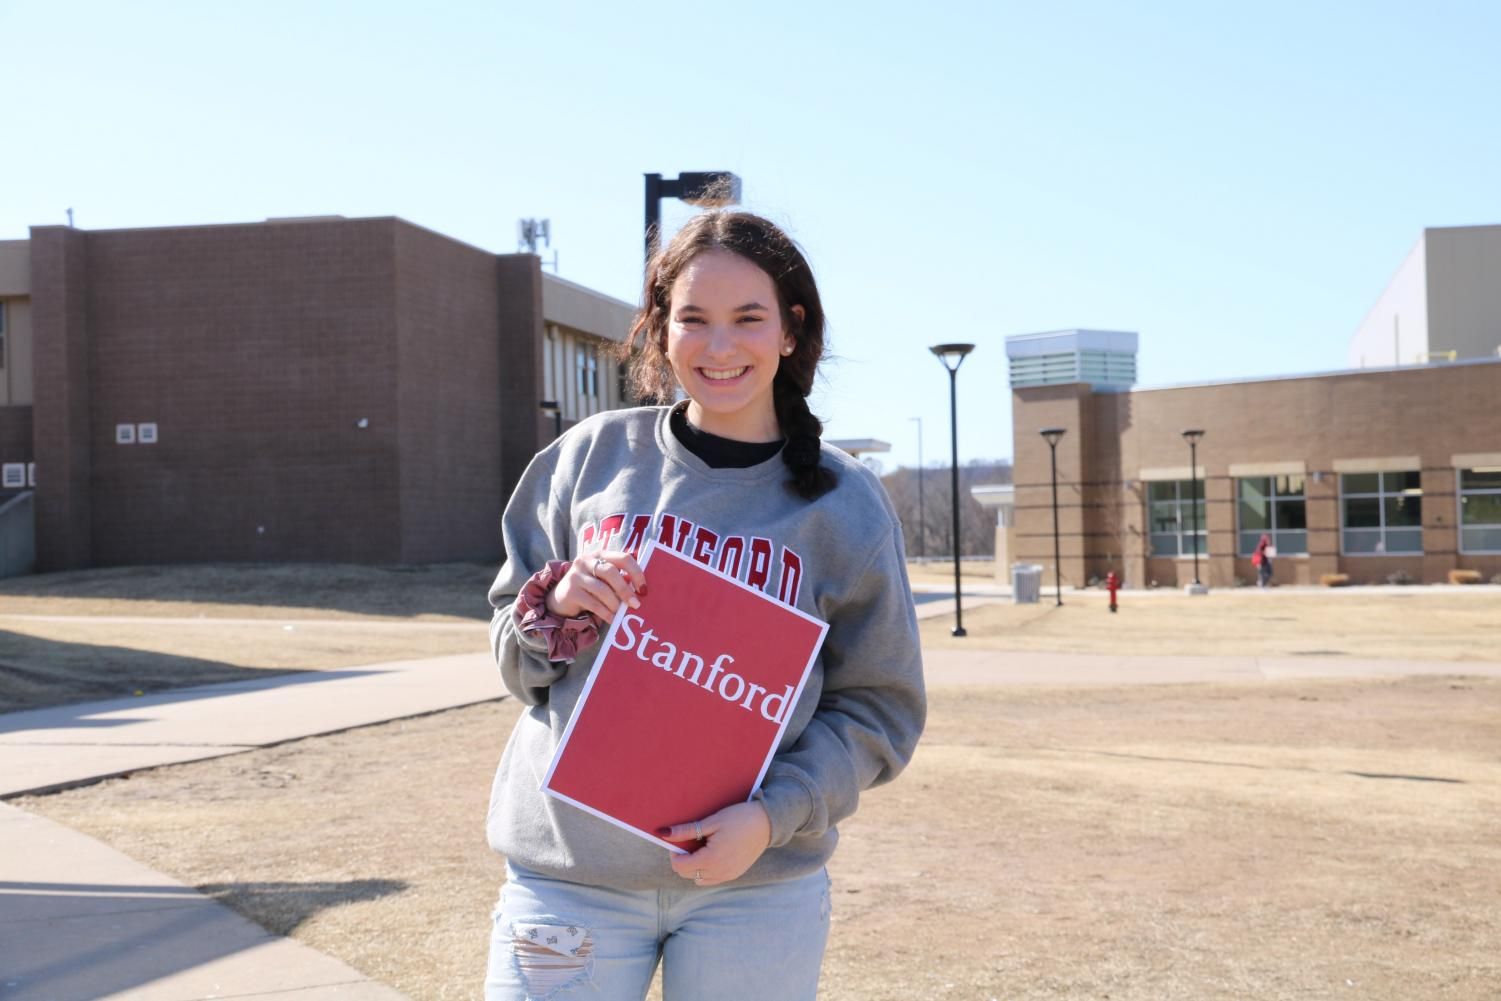 Senior Bailey Vought accepted a full-ride to Stanford for next year.